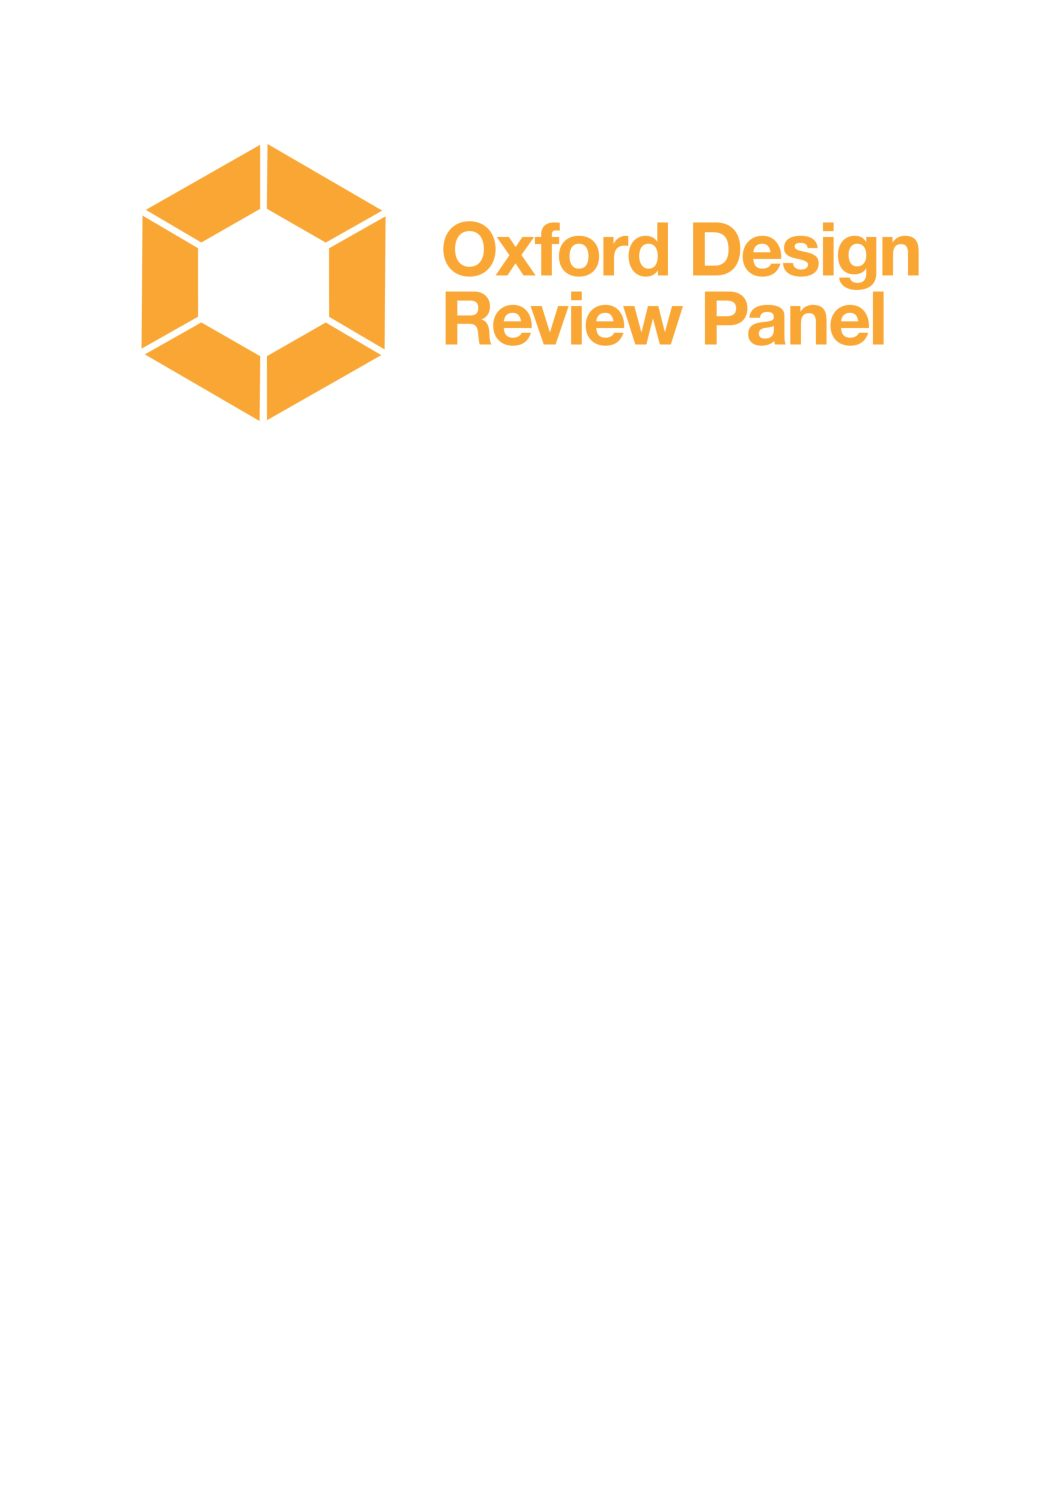 – Design South East and Oxford City Council are seeking applications to form a new Oxford Design Review Panel